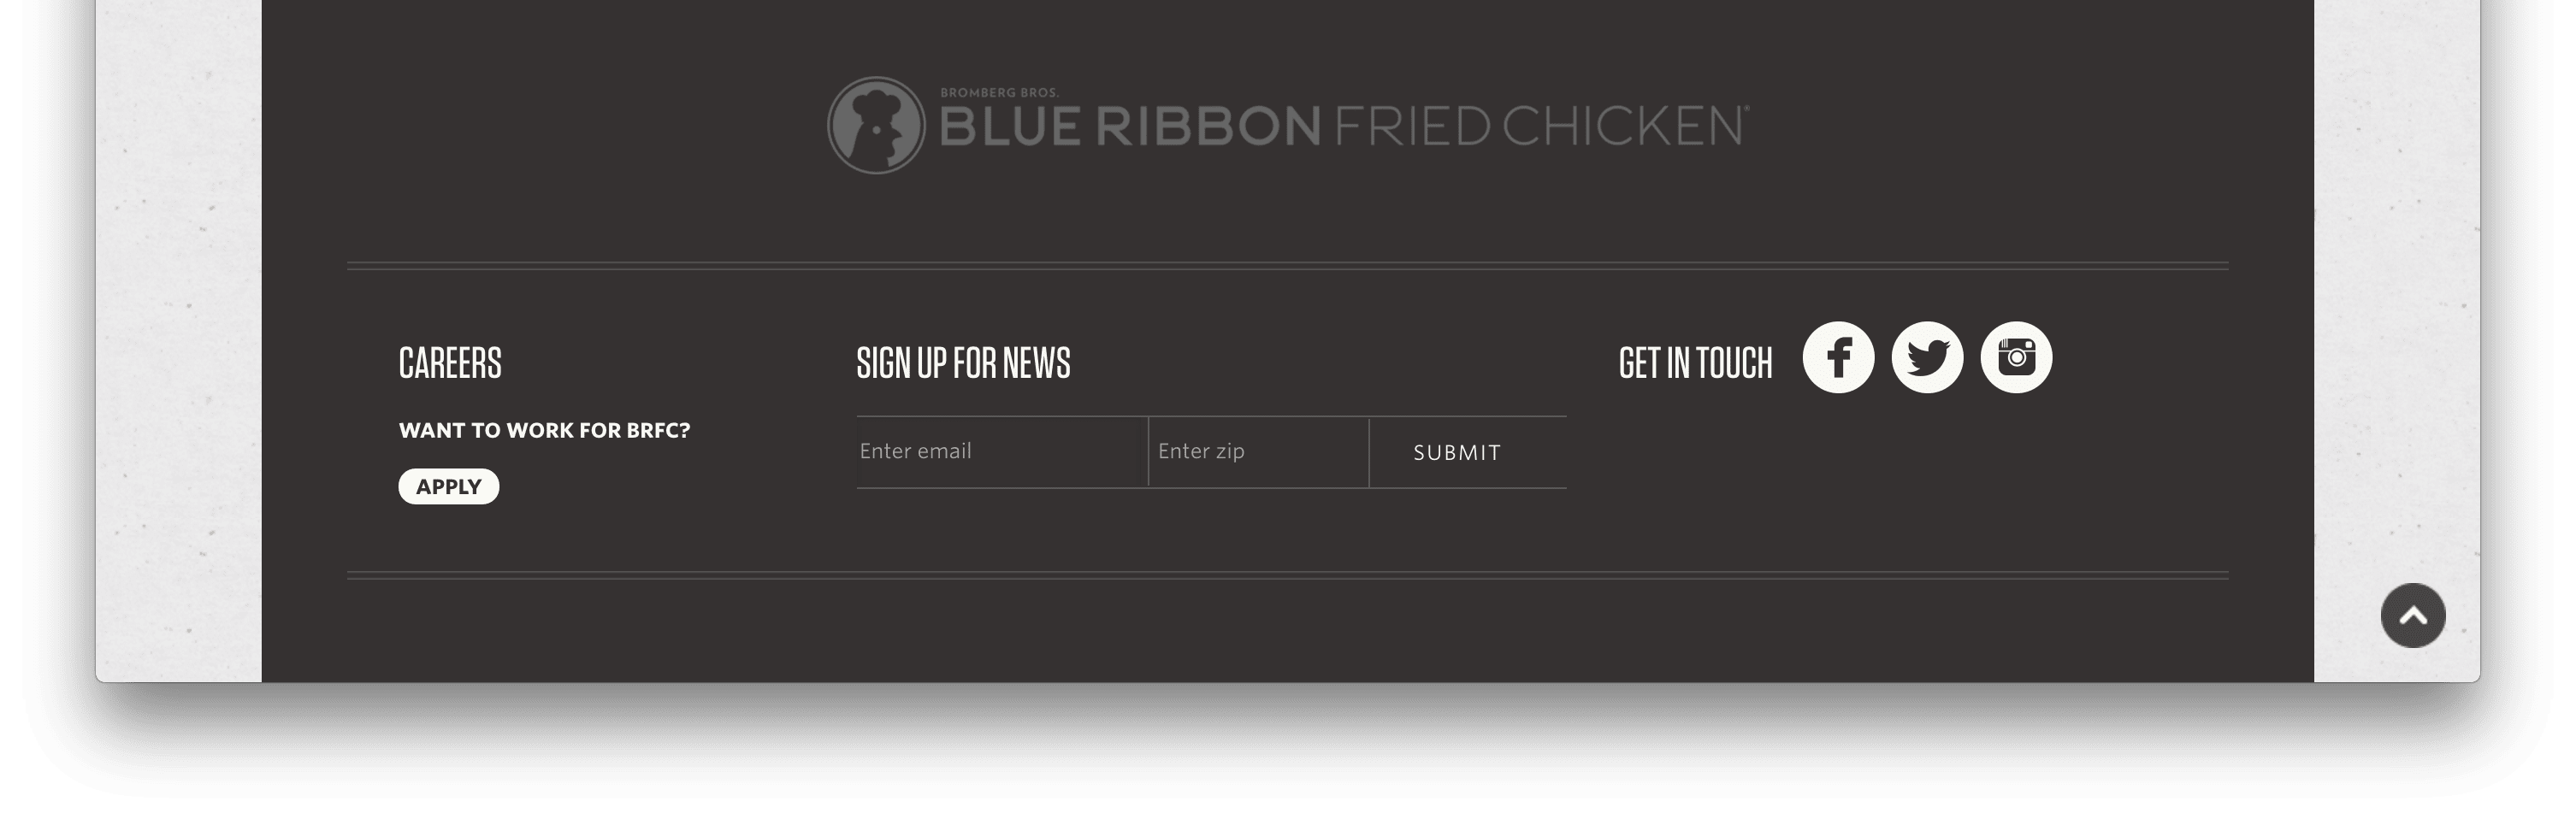 23_BlueRibbonChicken